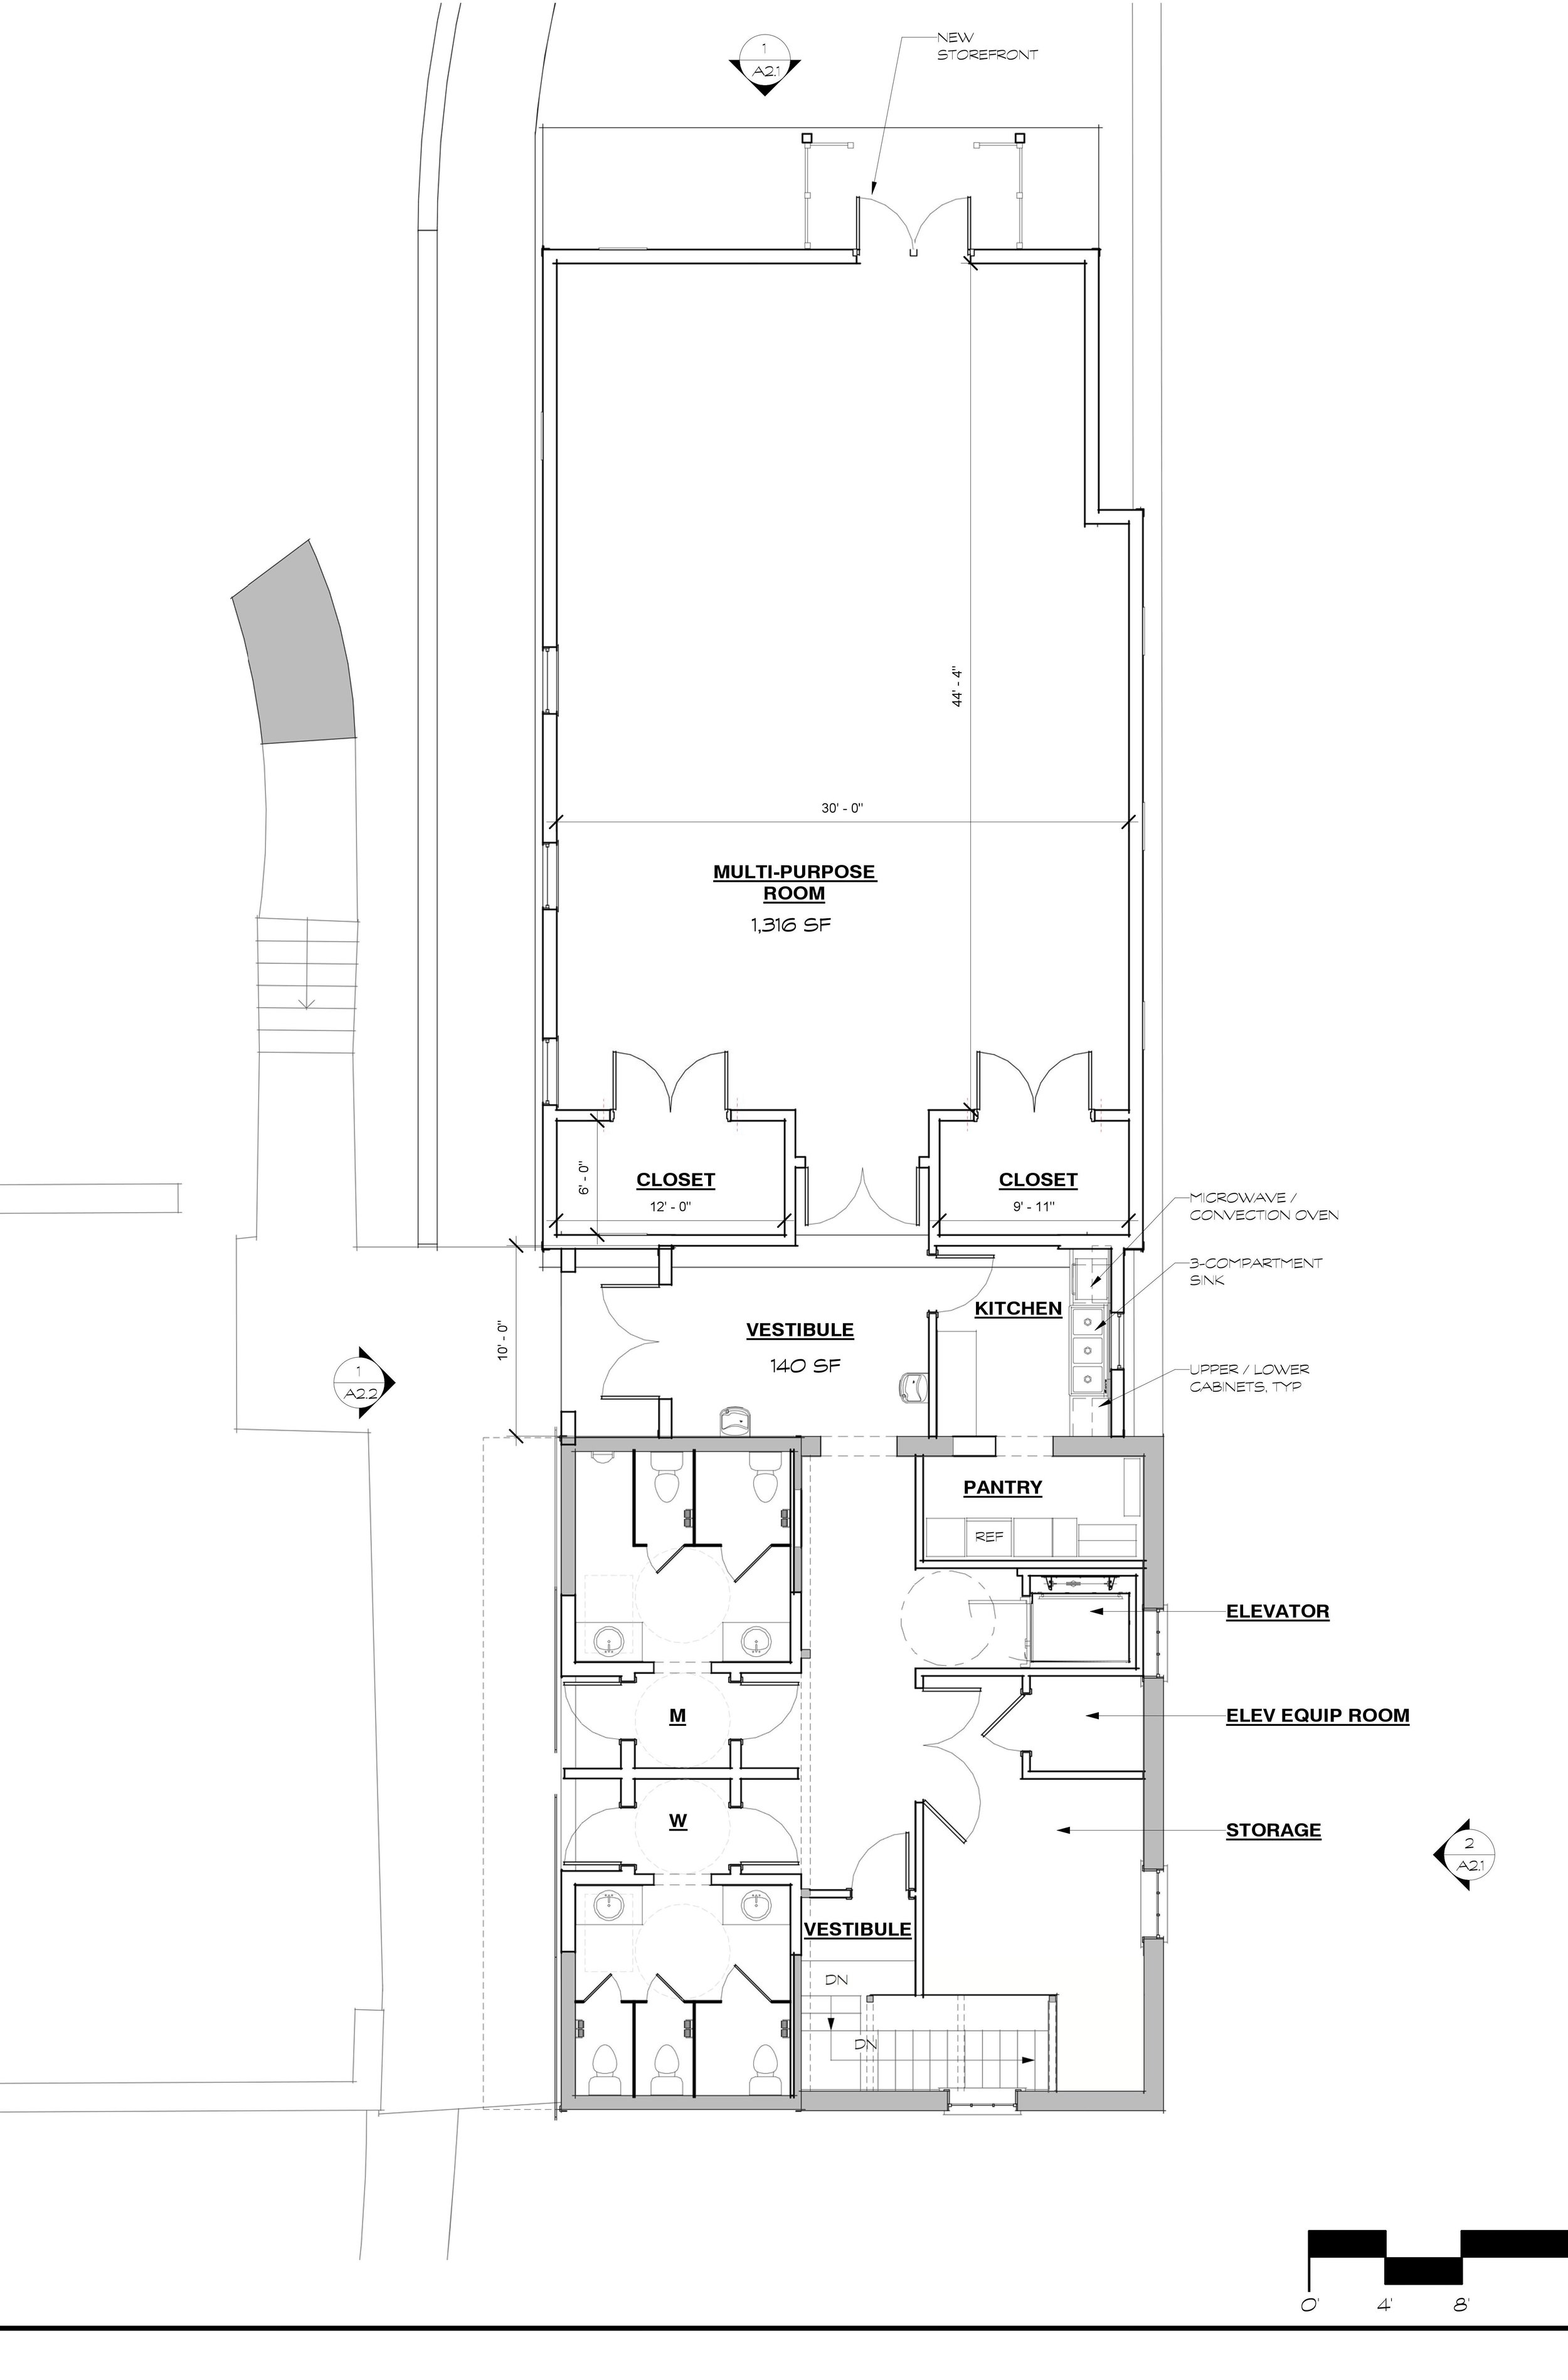 Floorplan 8-8-17 cropped.jpg